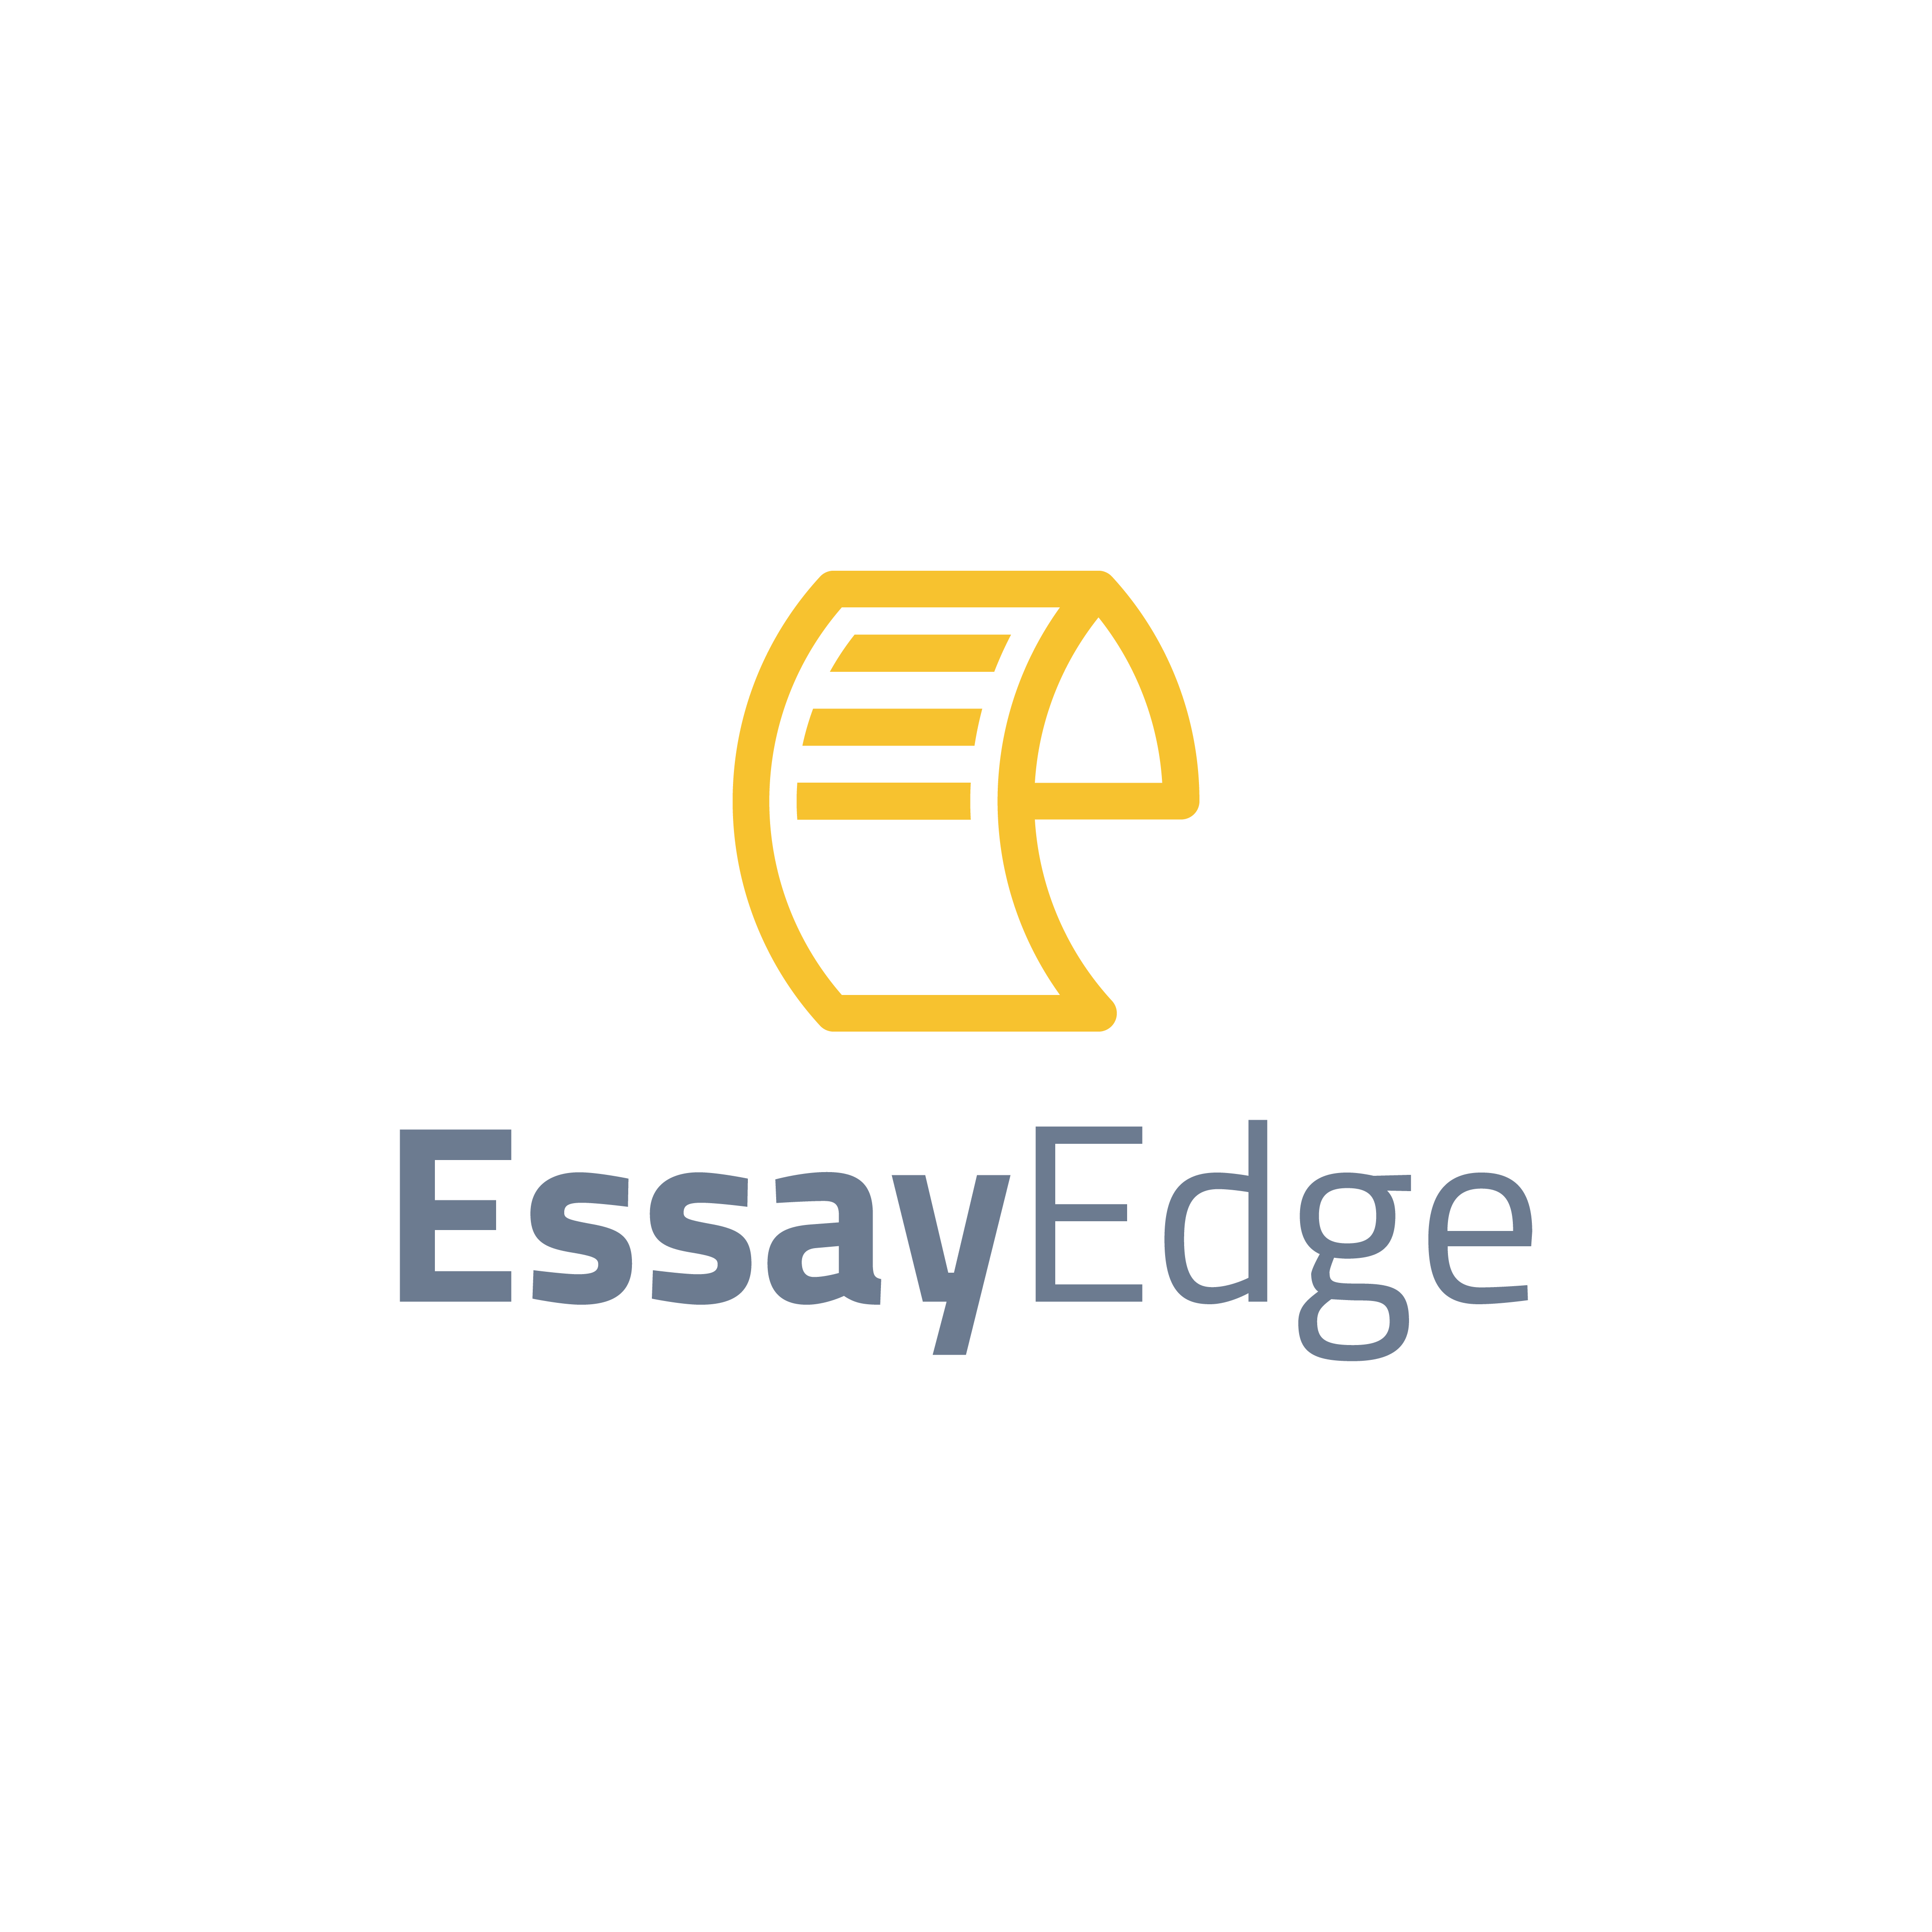 001 Essay Edge Final Png Unusual Essayedge Review Coupon Code Full